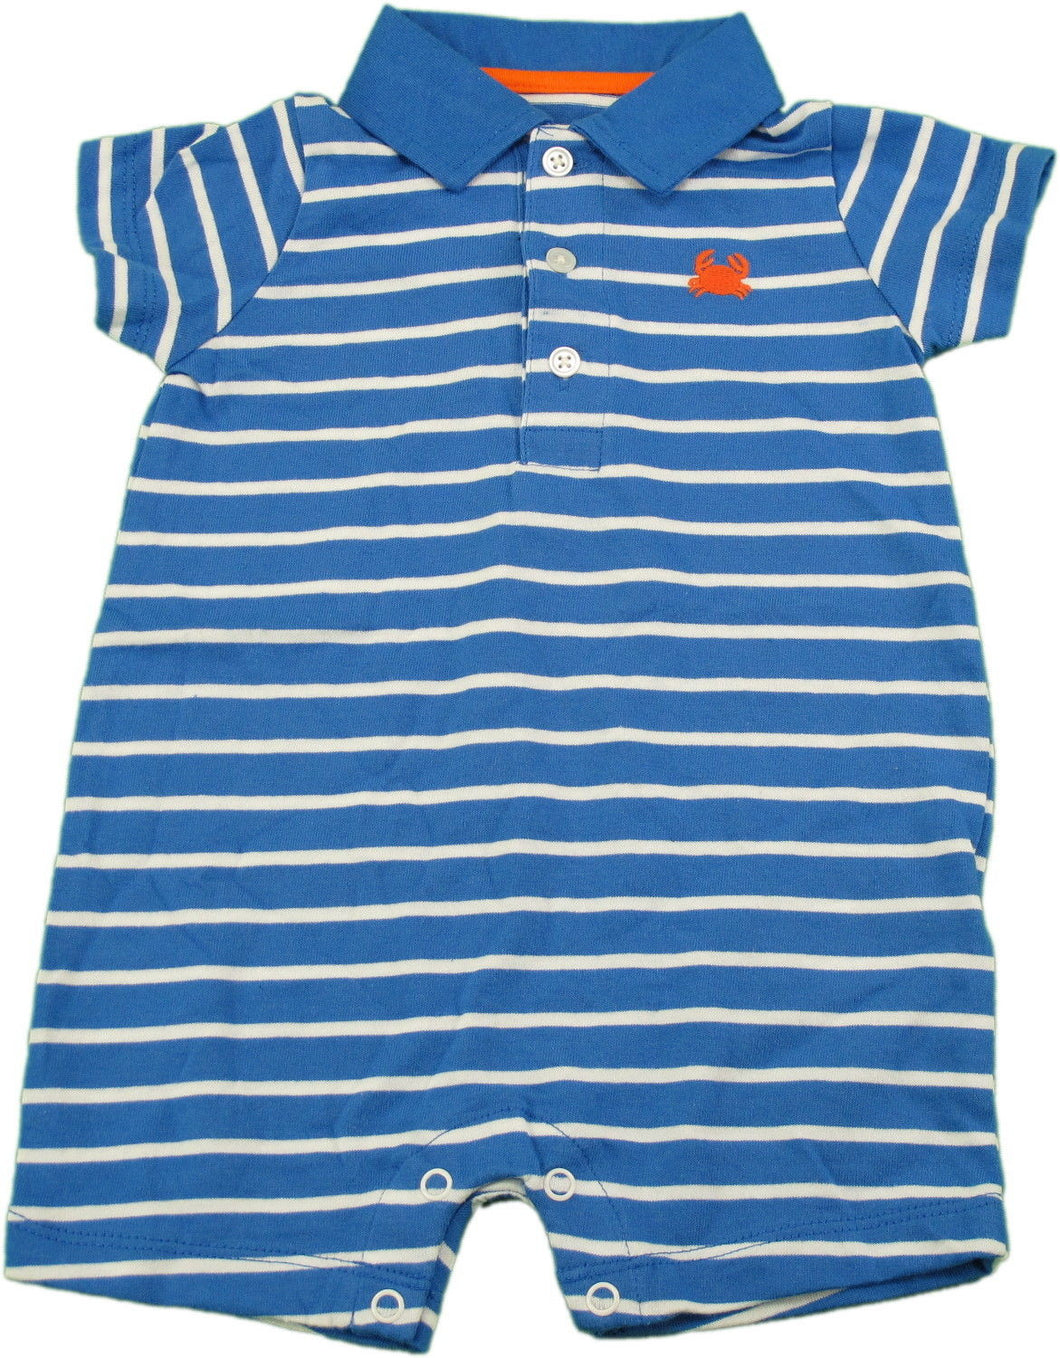 Carters Baby Boys Size 9 Months 1-Piece Short Sleeve Striped Shorts Romper, Blue